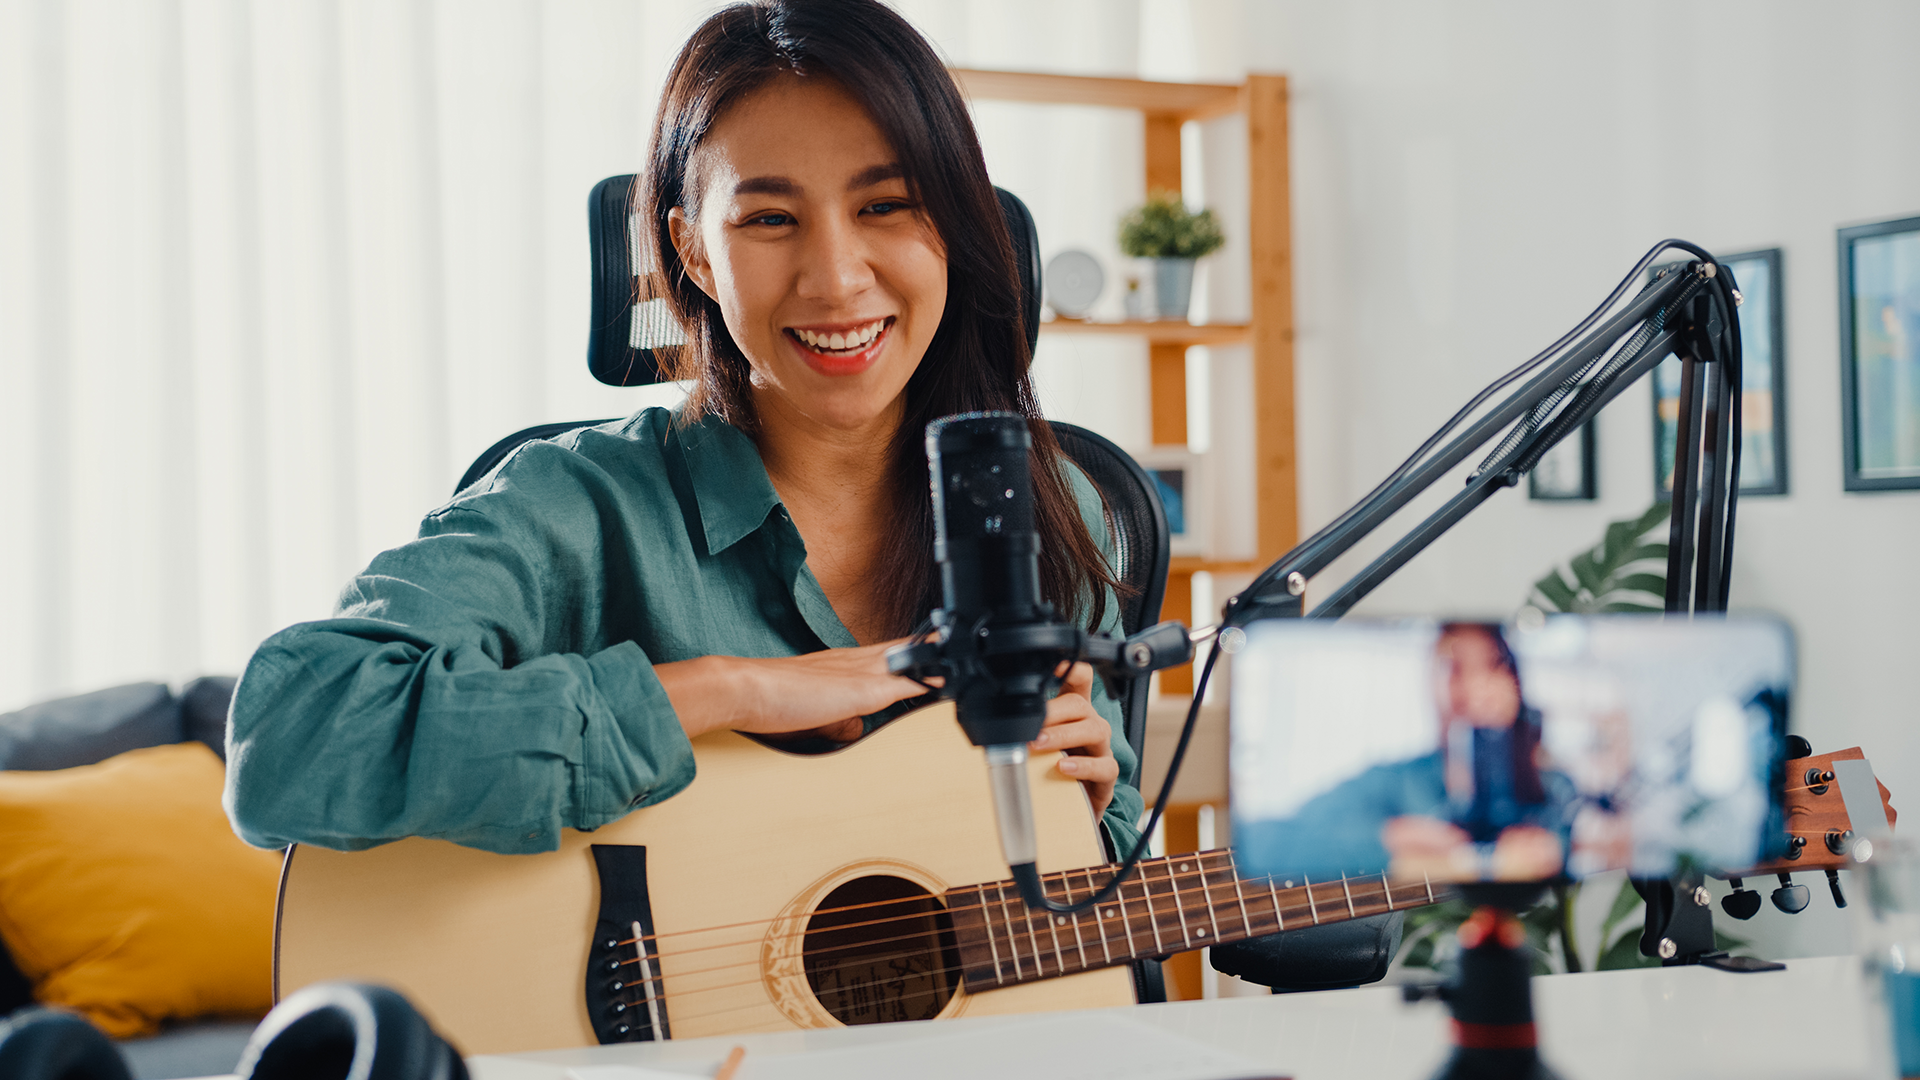 Symposium Expert Making Money By Teaching Guitar Lessons Online